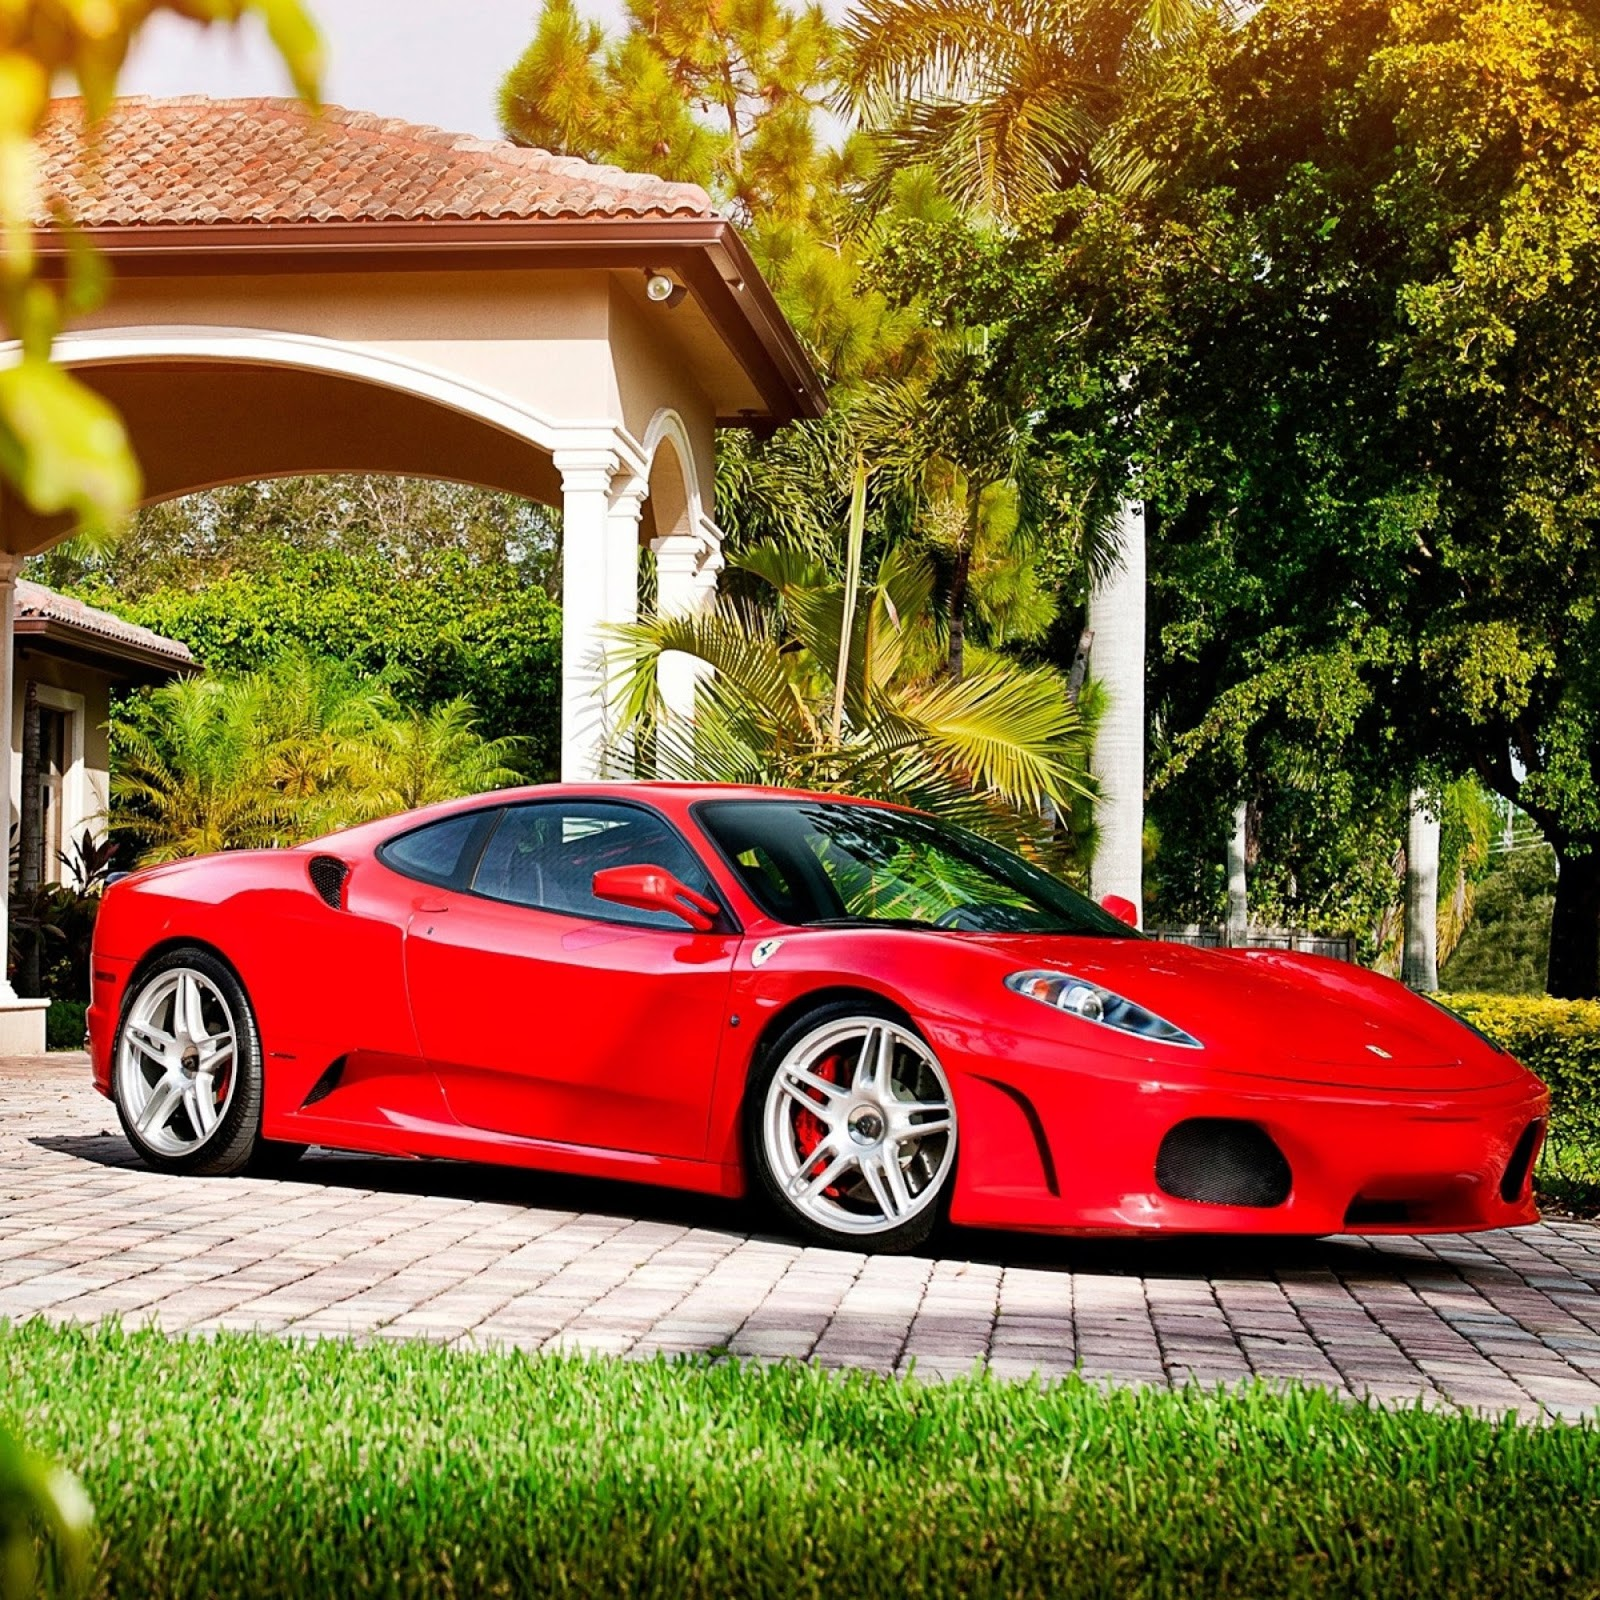 File Ferrari F430 Scuderia Wheel Jpg: Desktop Wallpapers 1080p: ADV1 Wheels